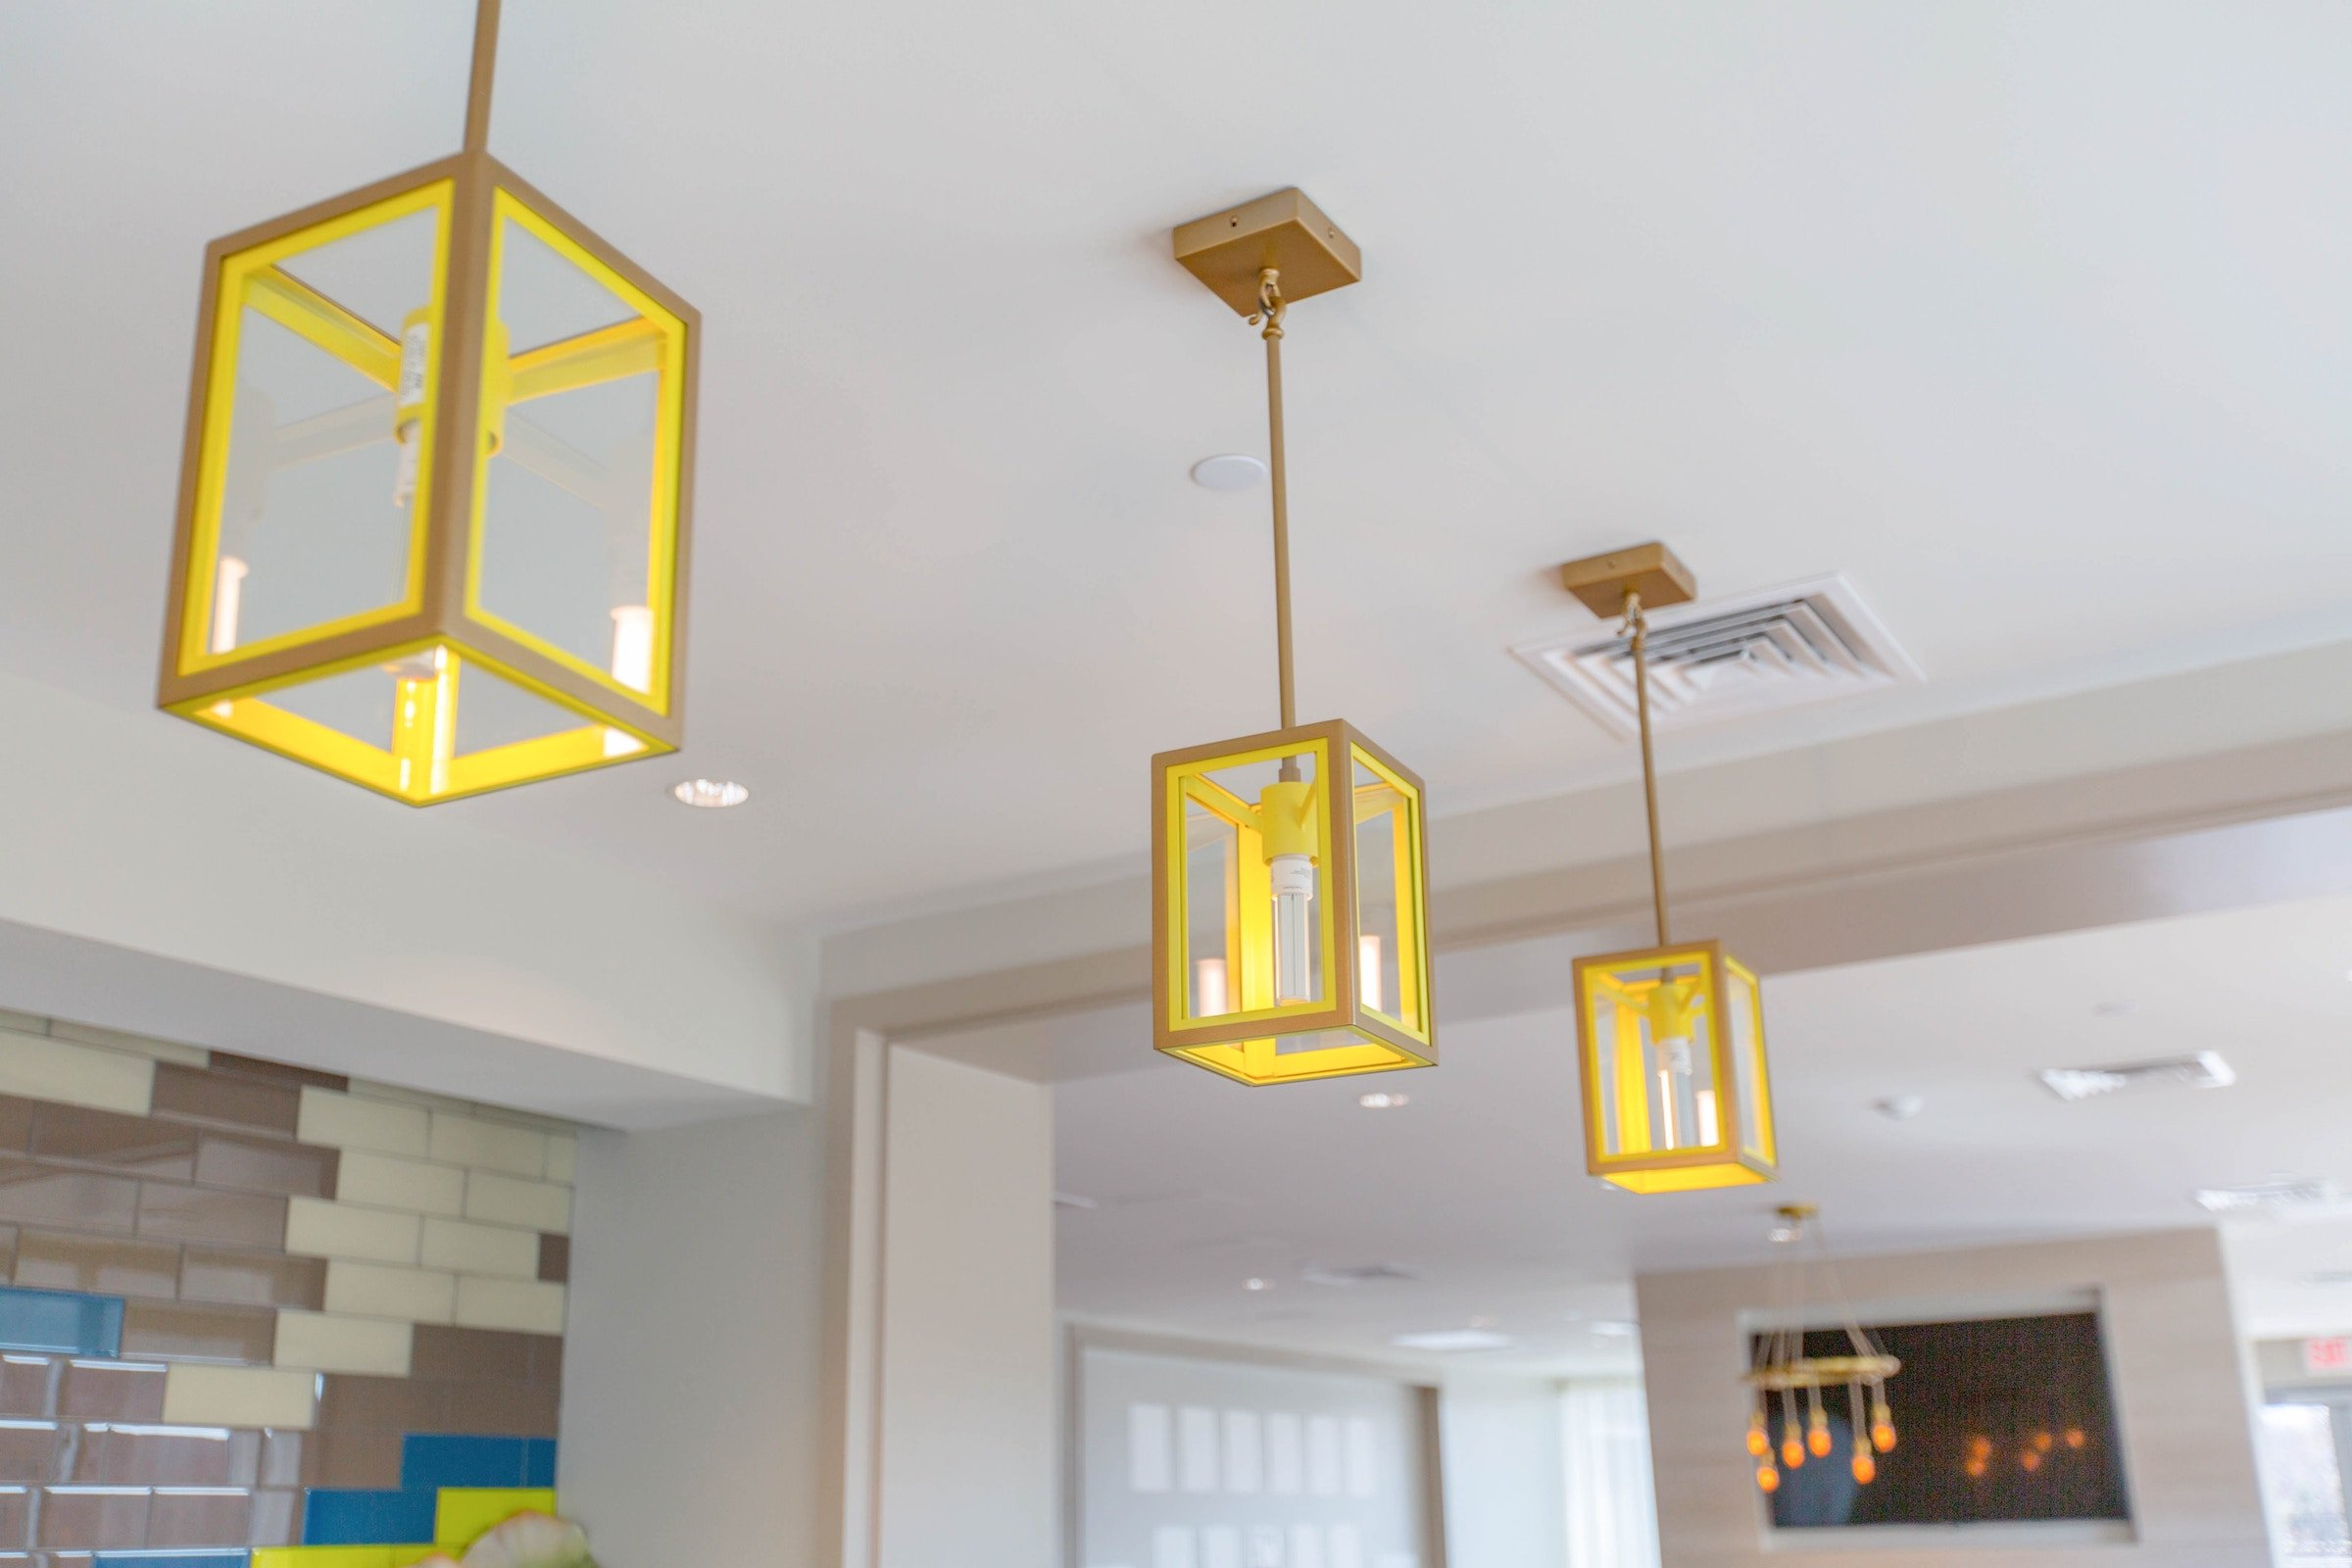 If our tips on how to install a light fixture inspired you to call the professionals, Puls can help!